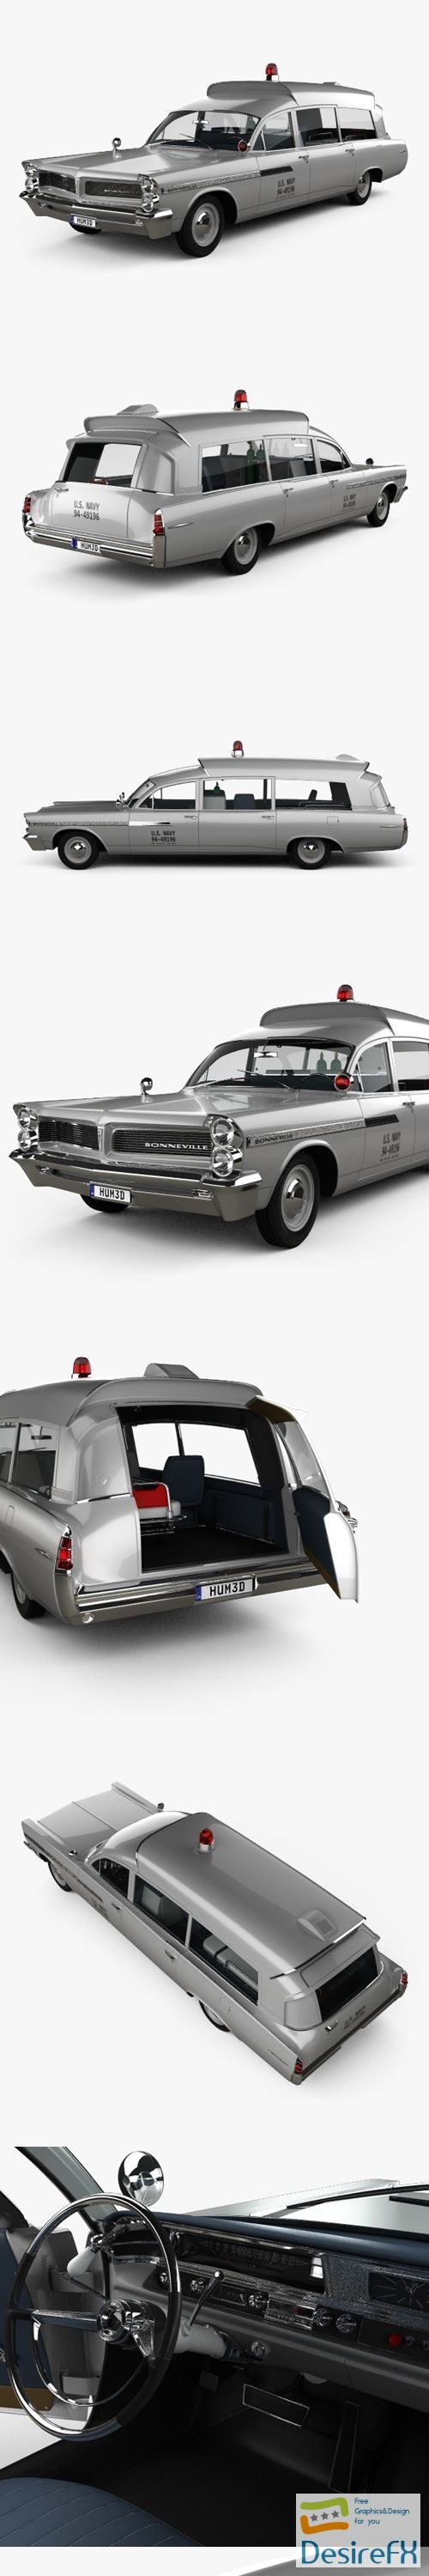 3d-models - Pontiac Bonneville Station Wagon Ambulance Kennedy with HQ interior 1963 3D Model